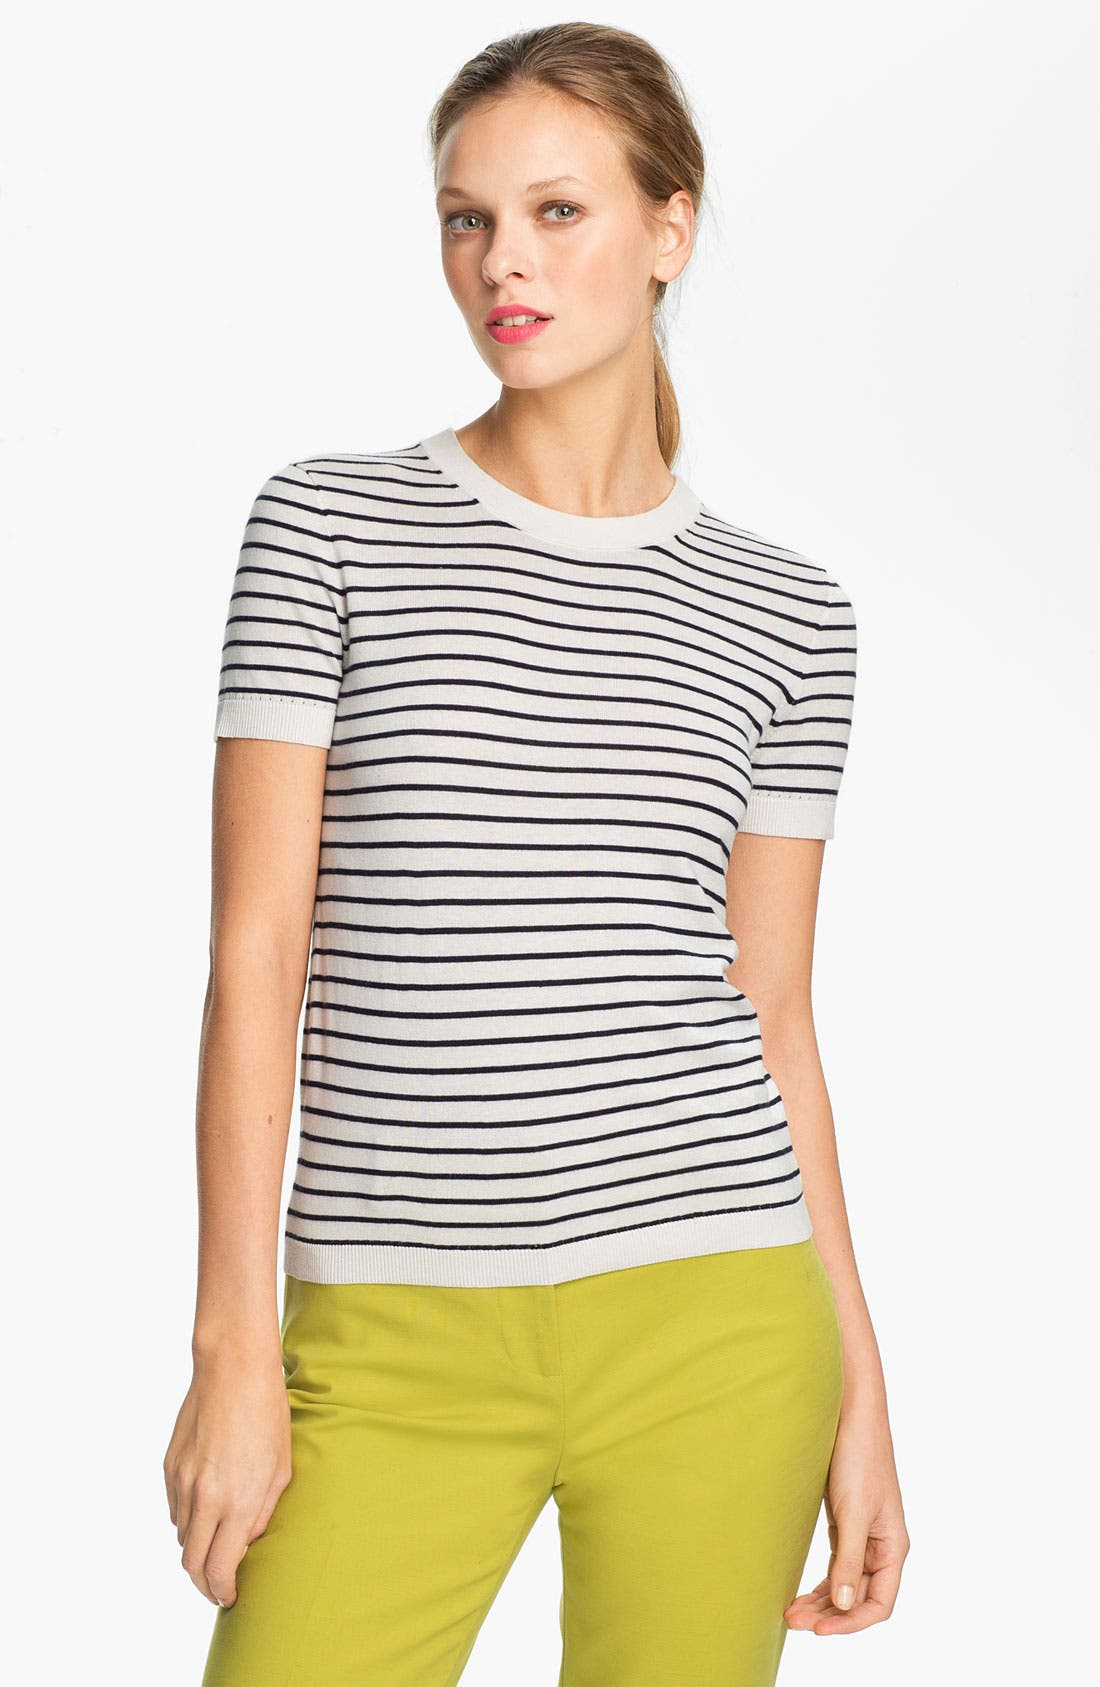 Alternate Image 1 Selected - kate spade new york 'nataly' crewneck sweater